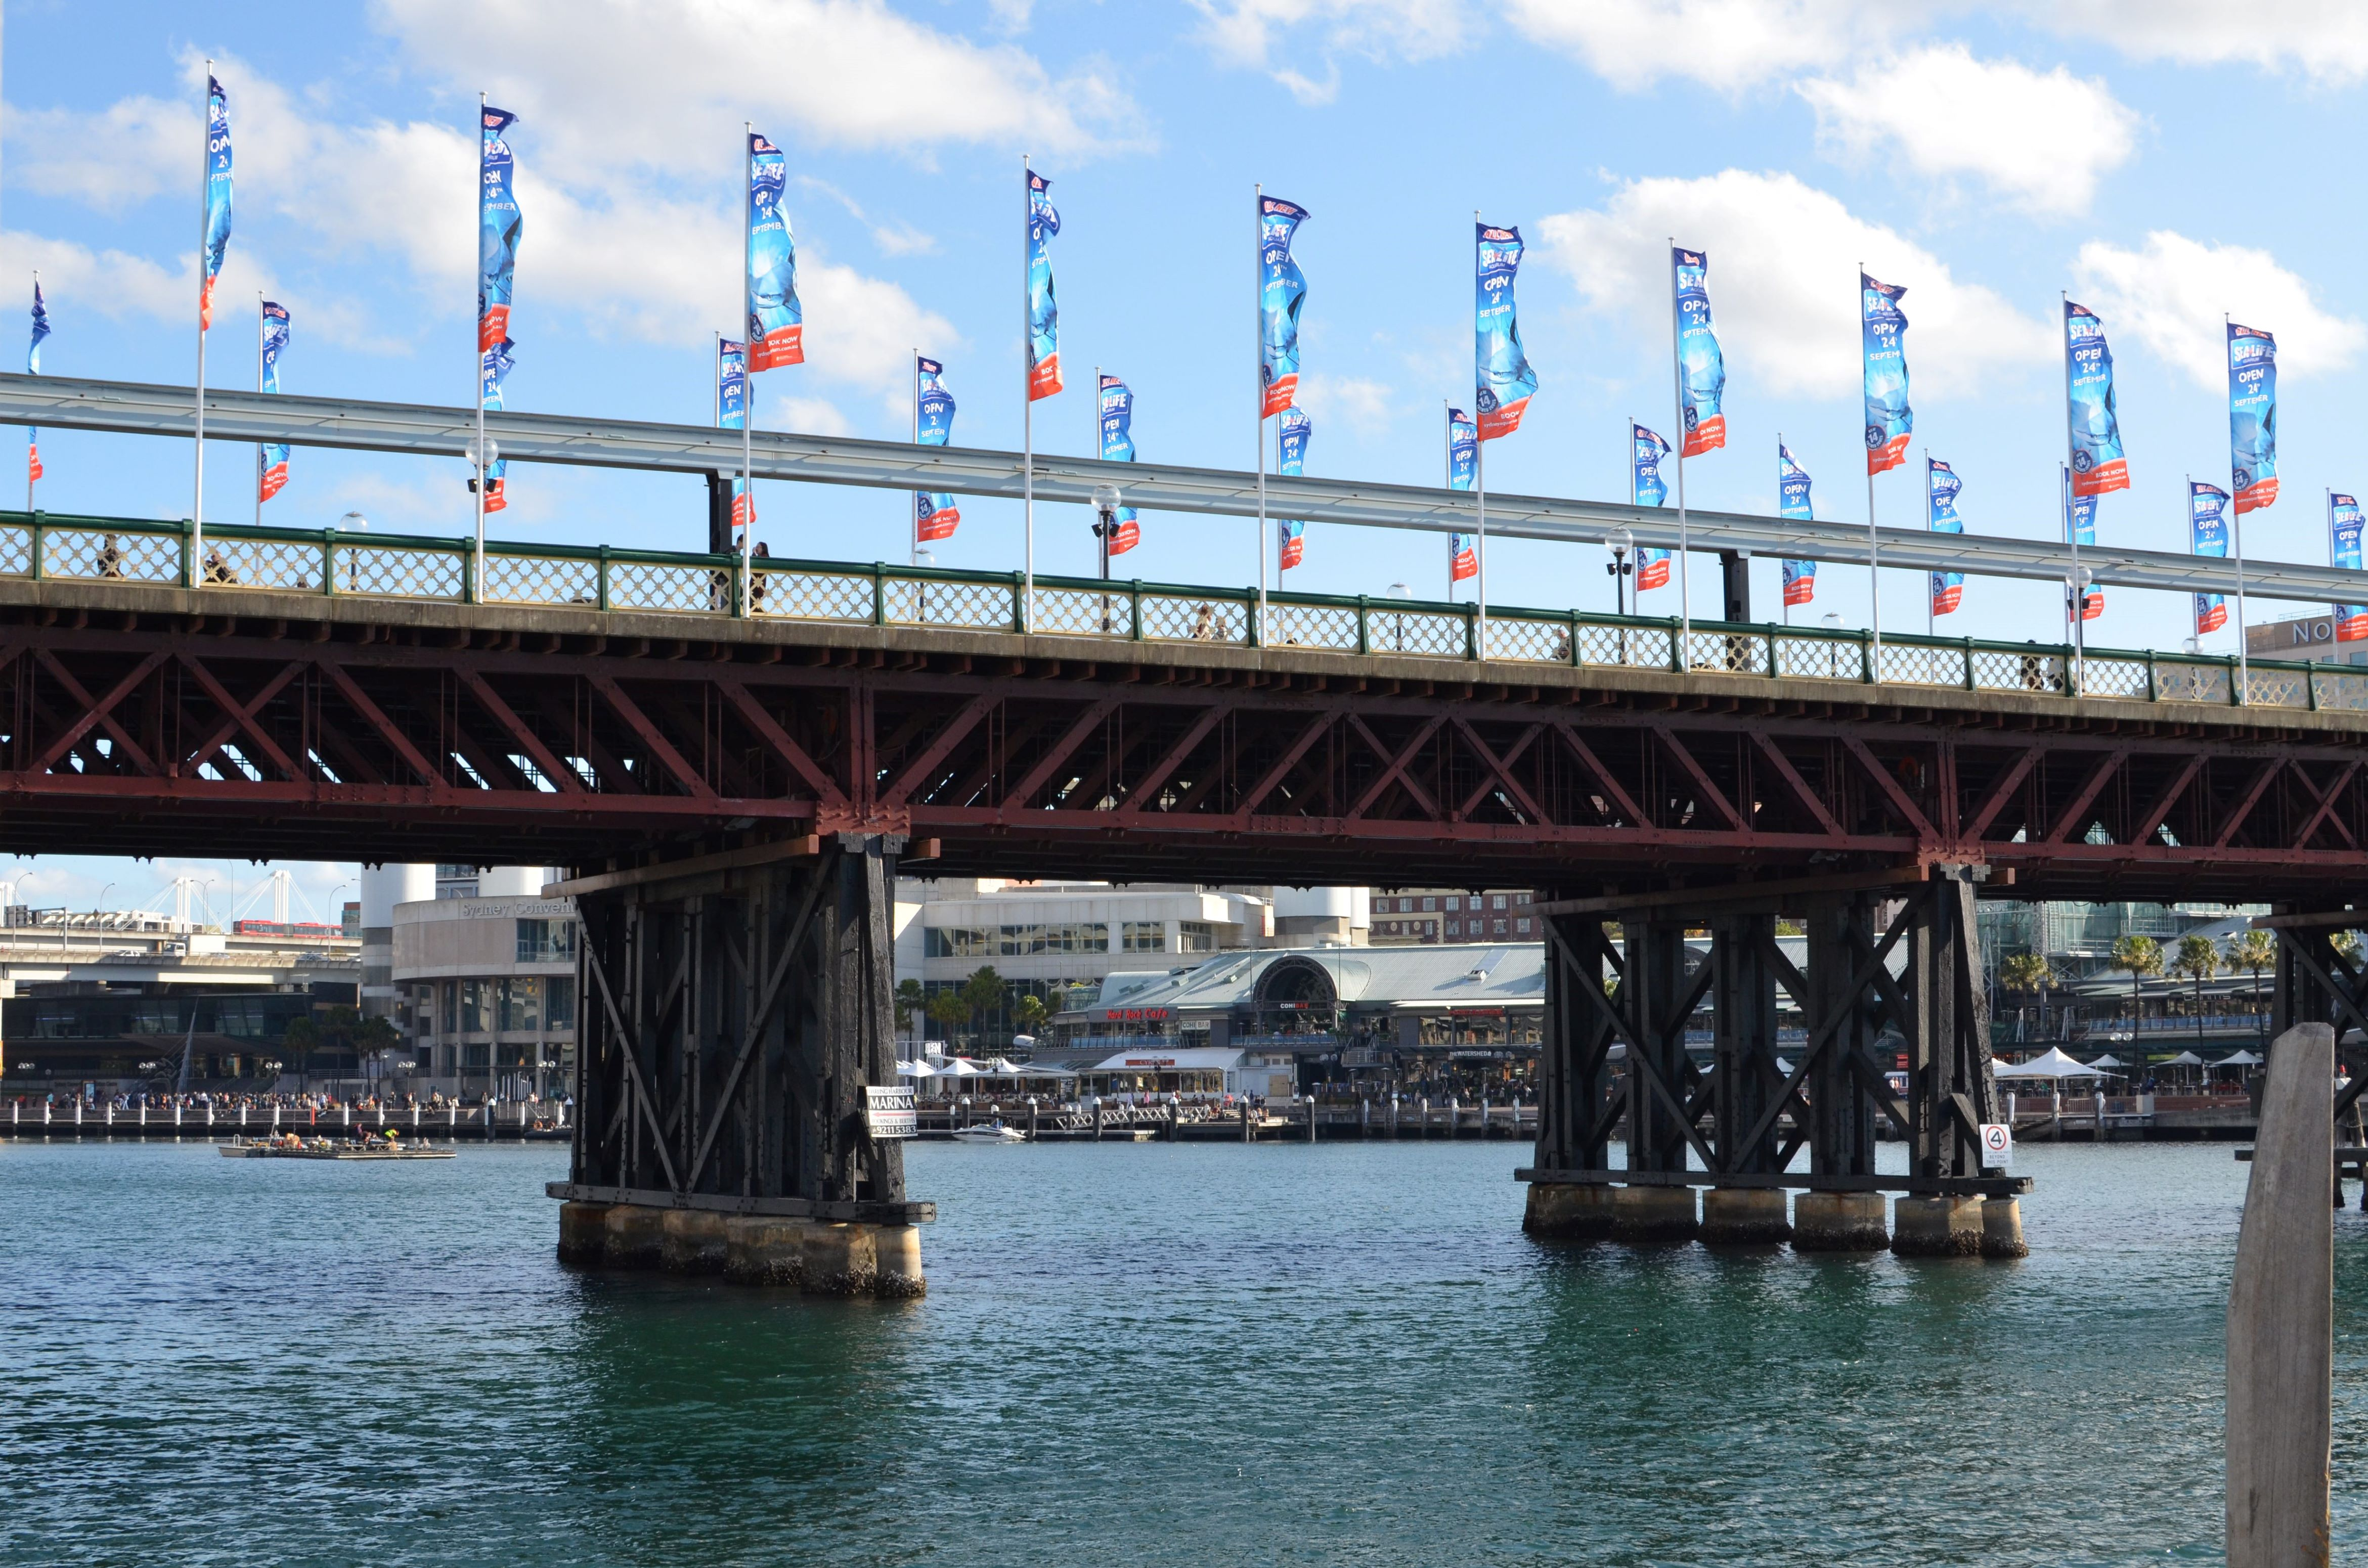 Don't miss the chance to visit the Pyrmont Bridge.